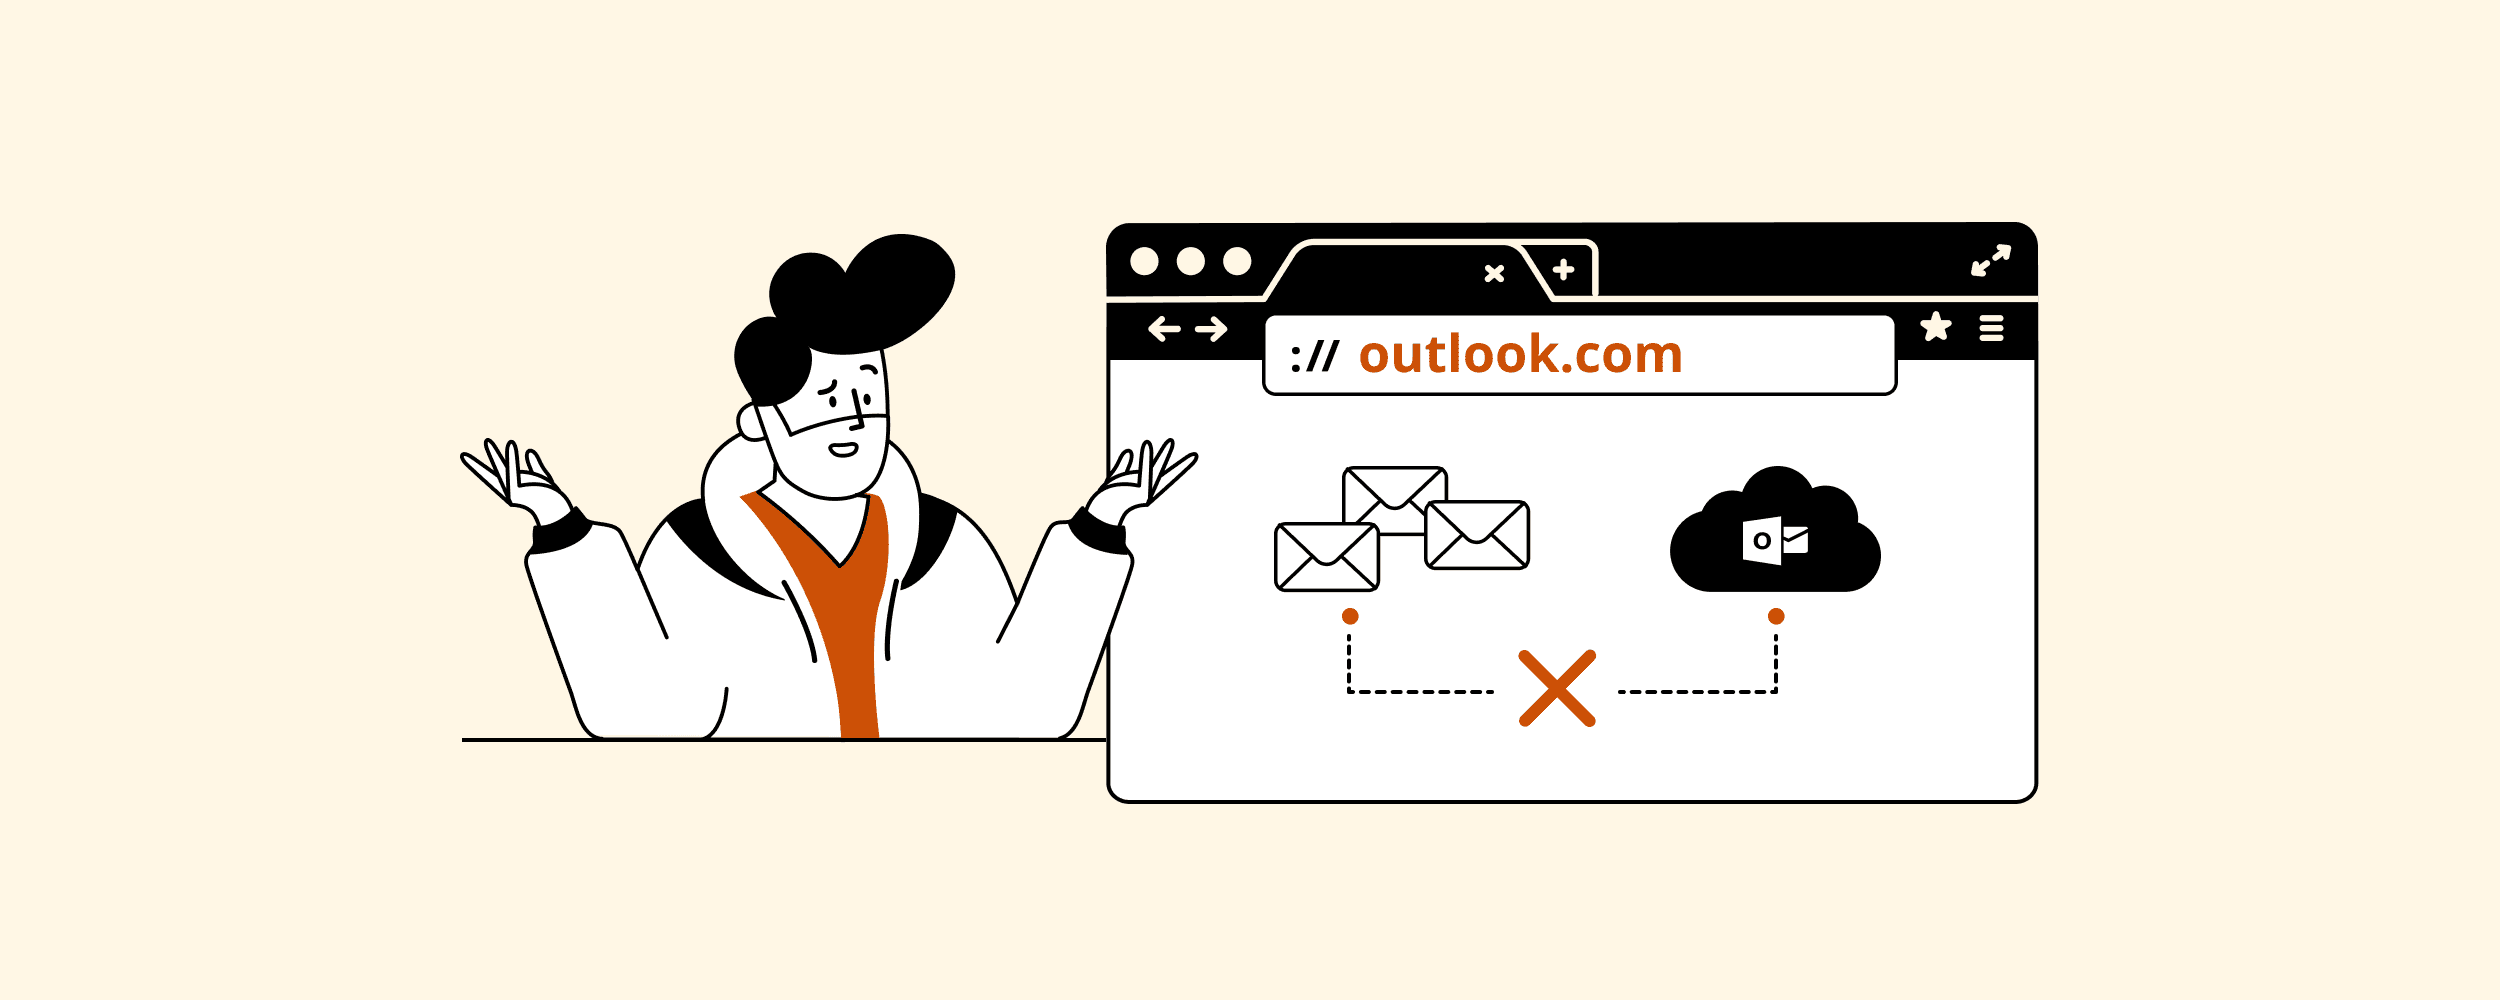 You Can No Longer Connect New Email Accounts to Outlook.com as of May 10th